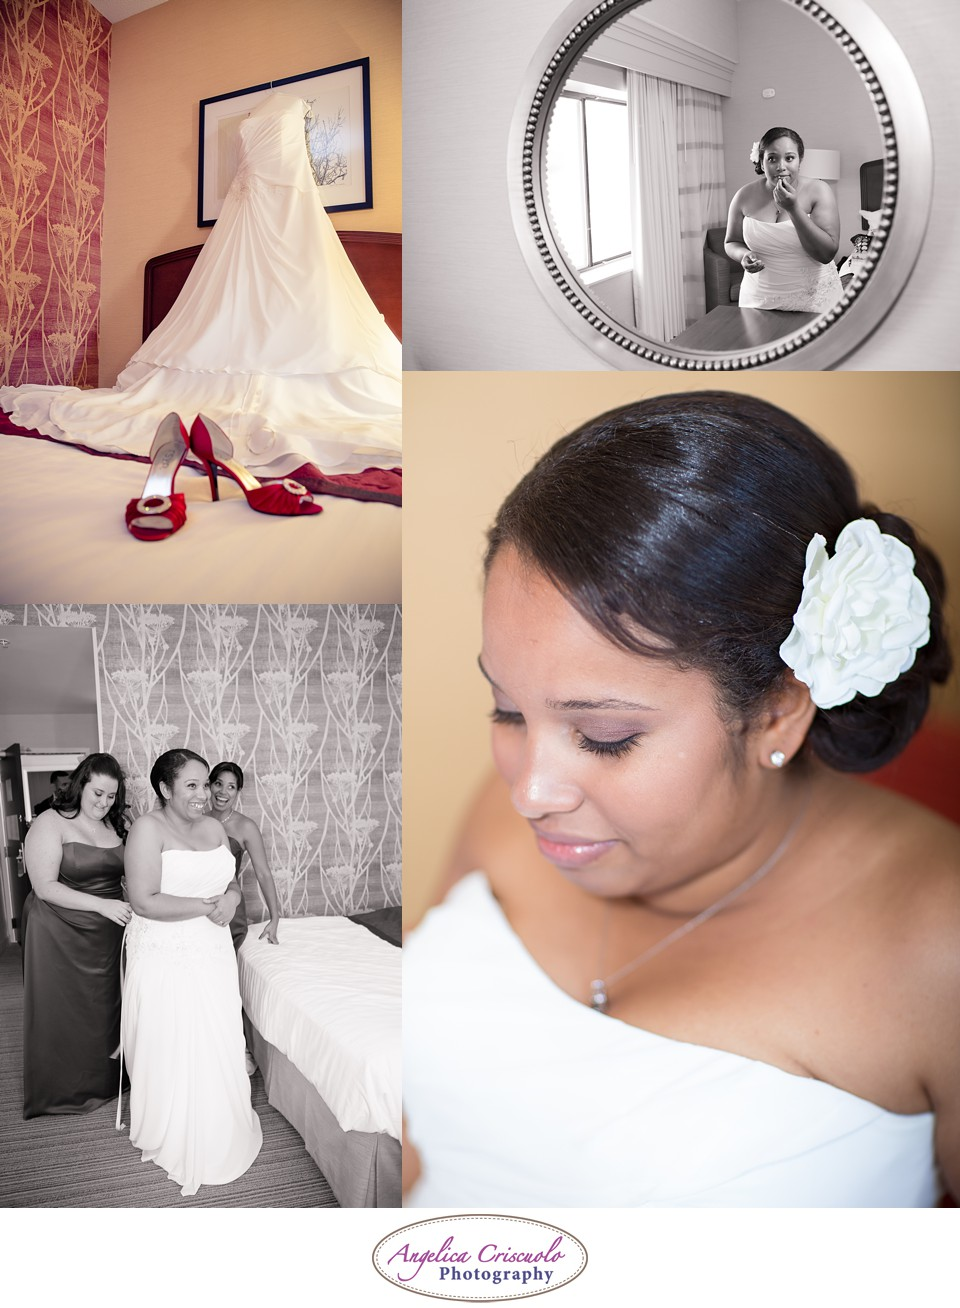 NYC NJ Getting Ready Bridal Gown Photo ideas VJCoddWedding8.12.12-3